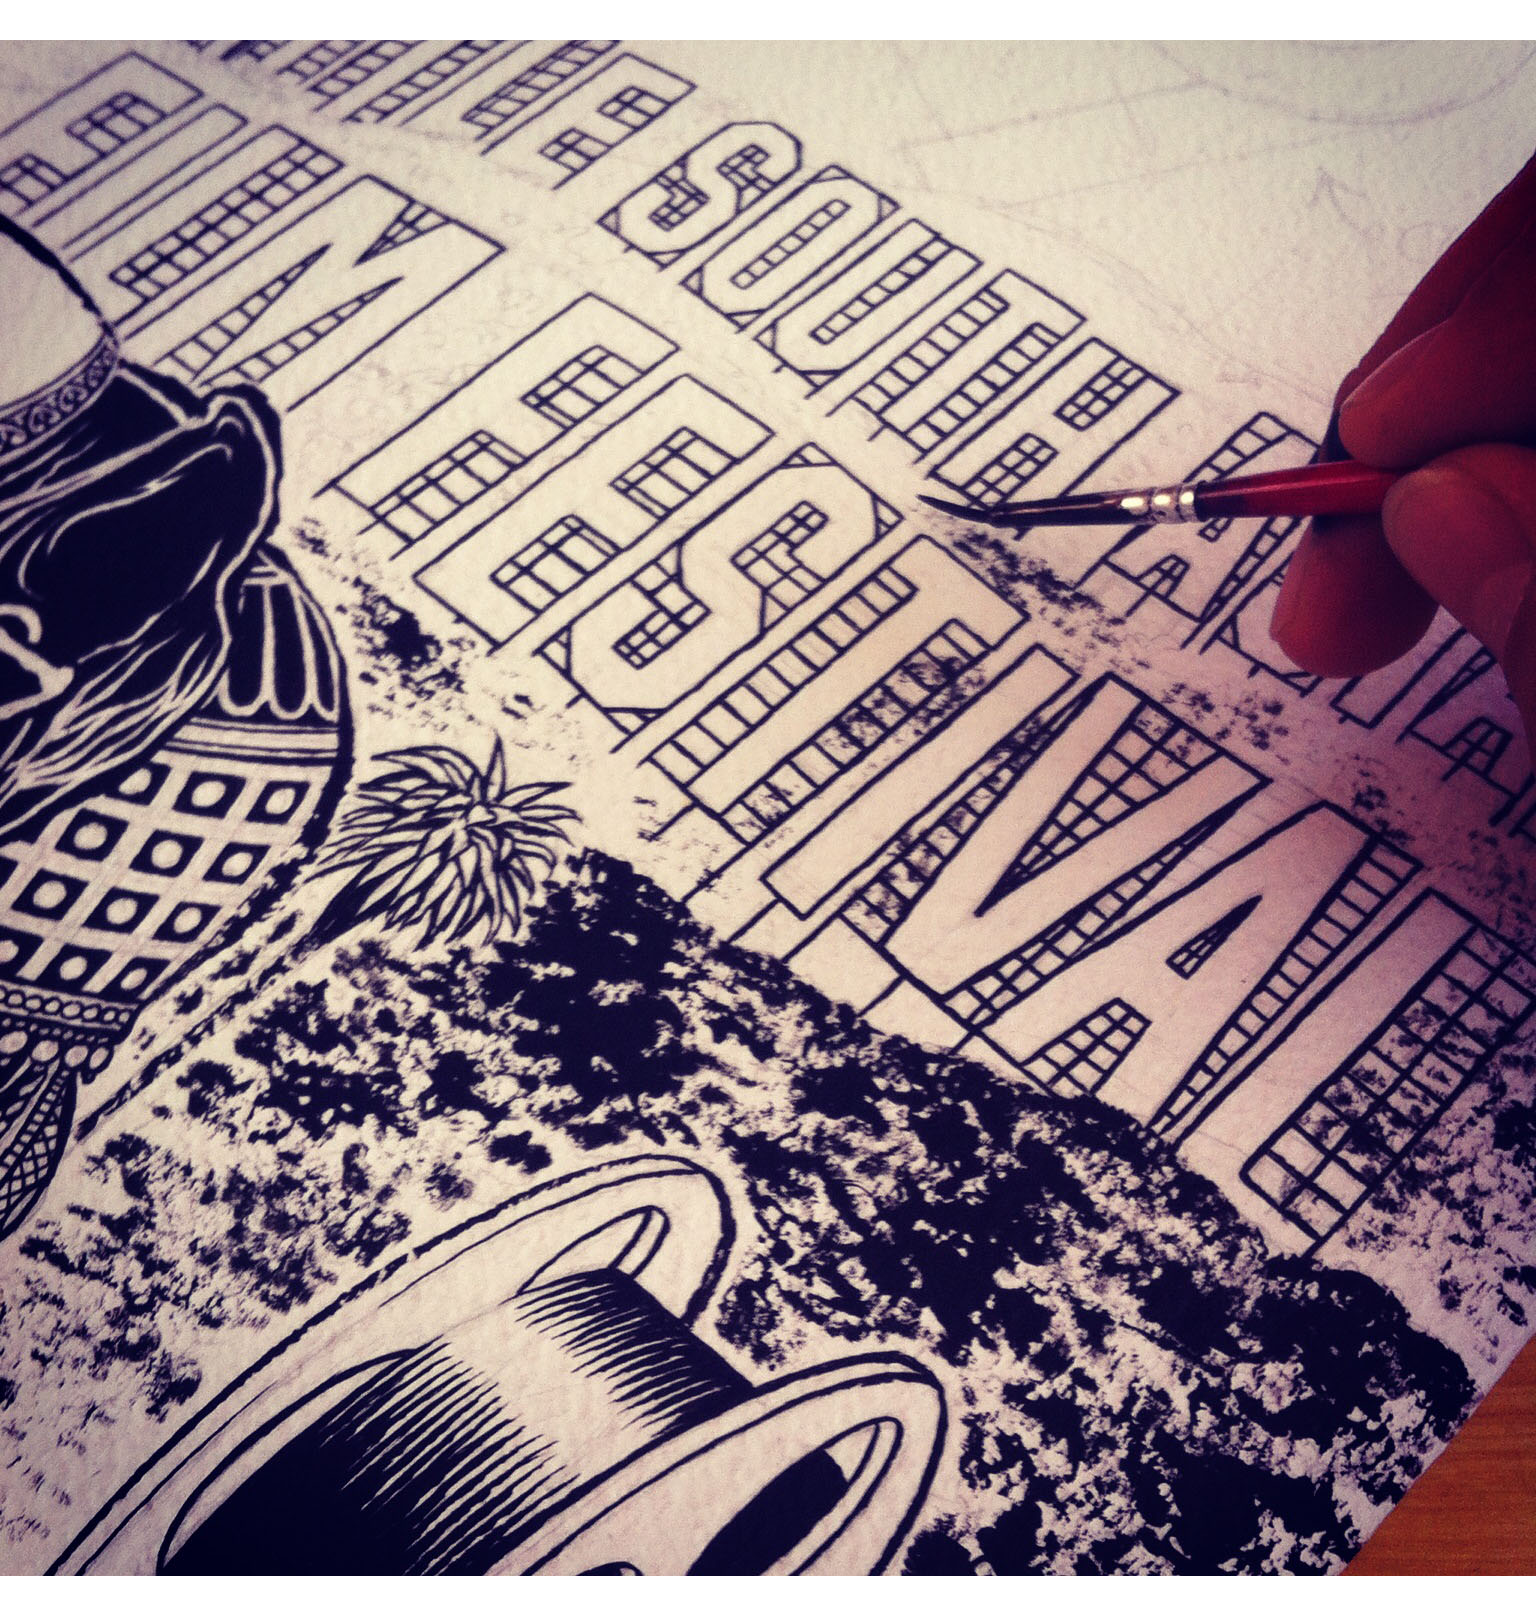 inking 2 (site)